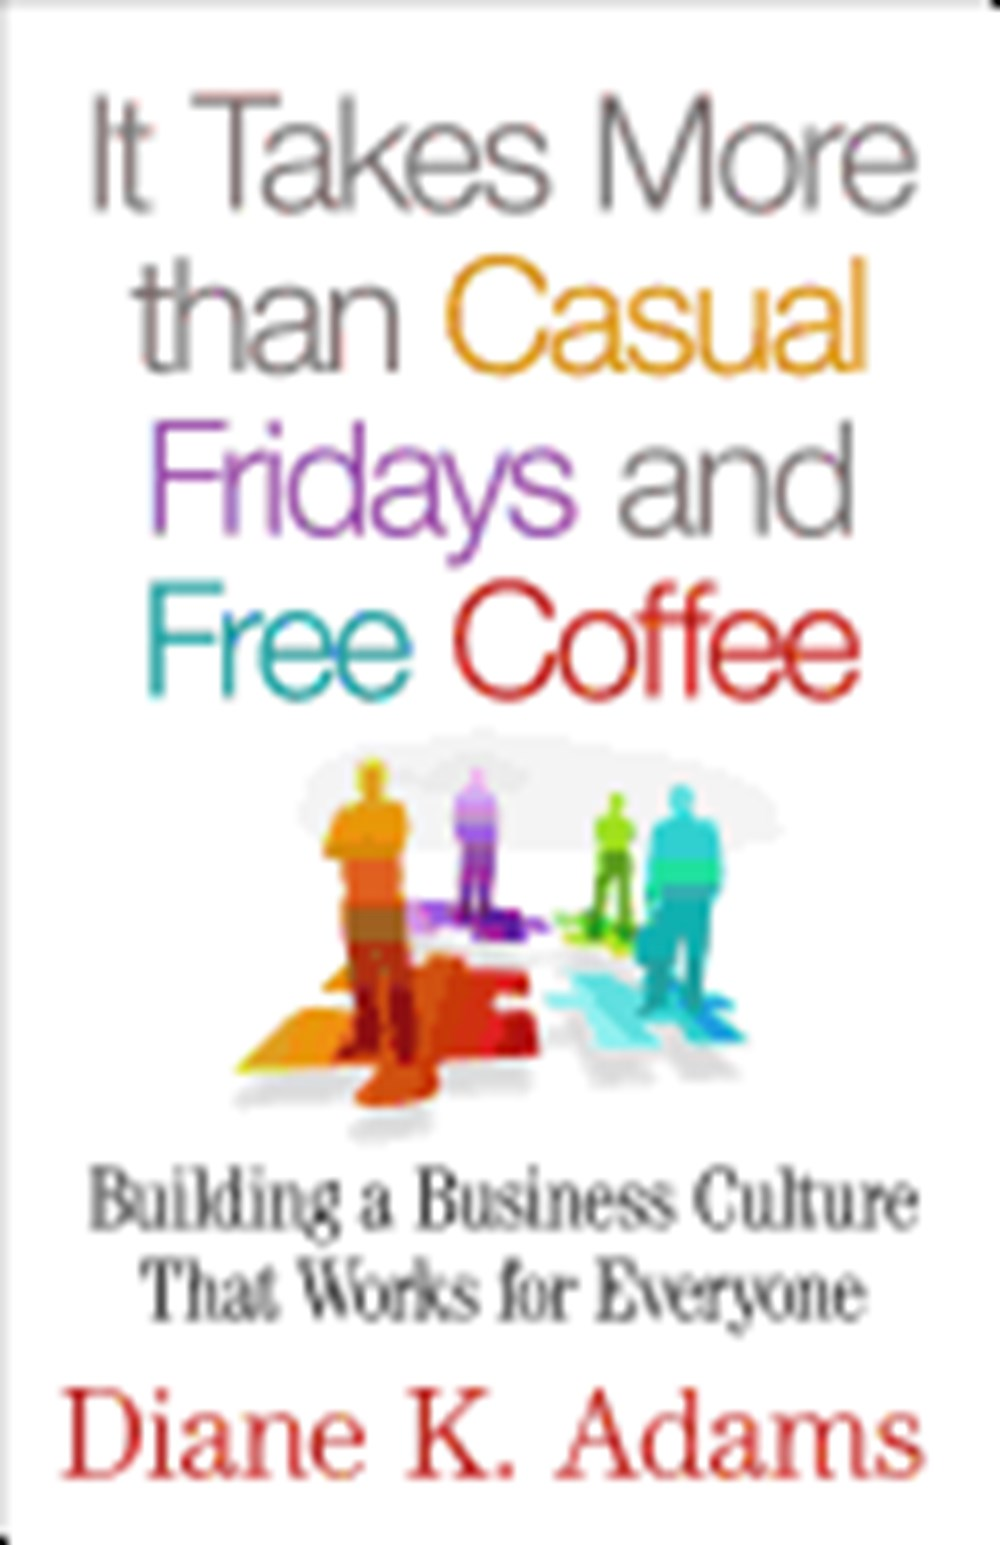 It Takes More Than Casual Fridays and Free Coffee Building a Corporate Culture That Works (2015)